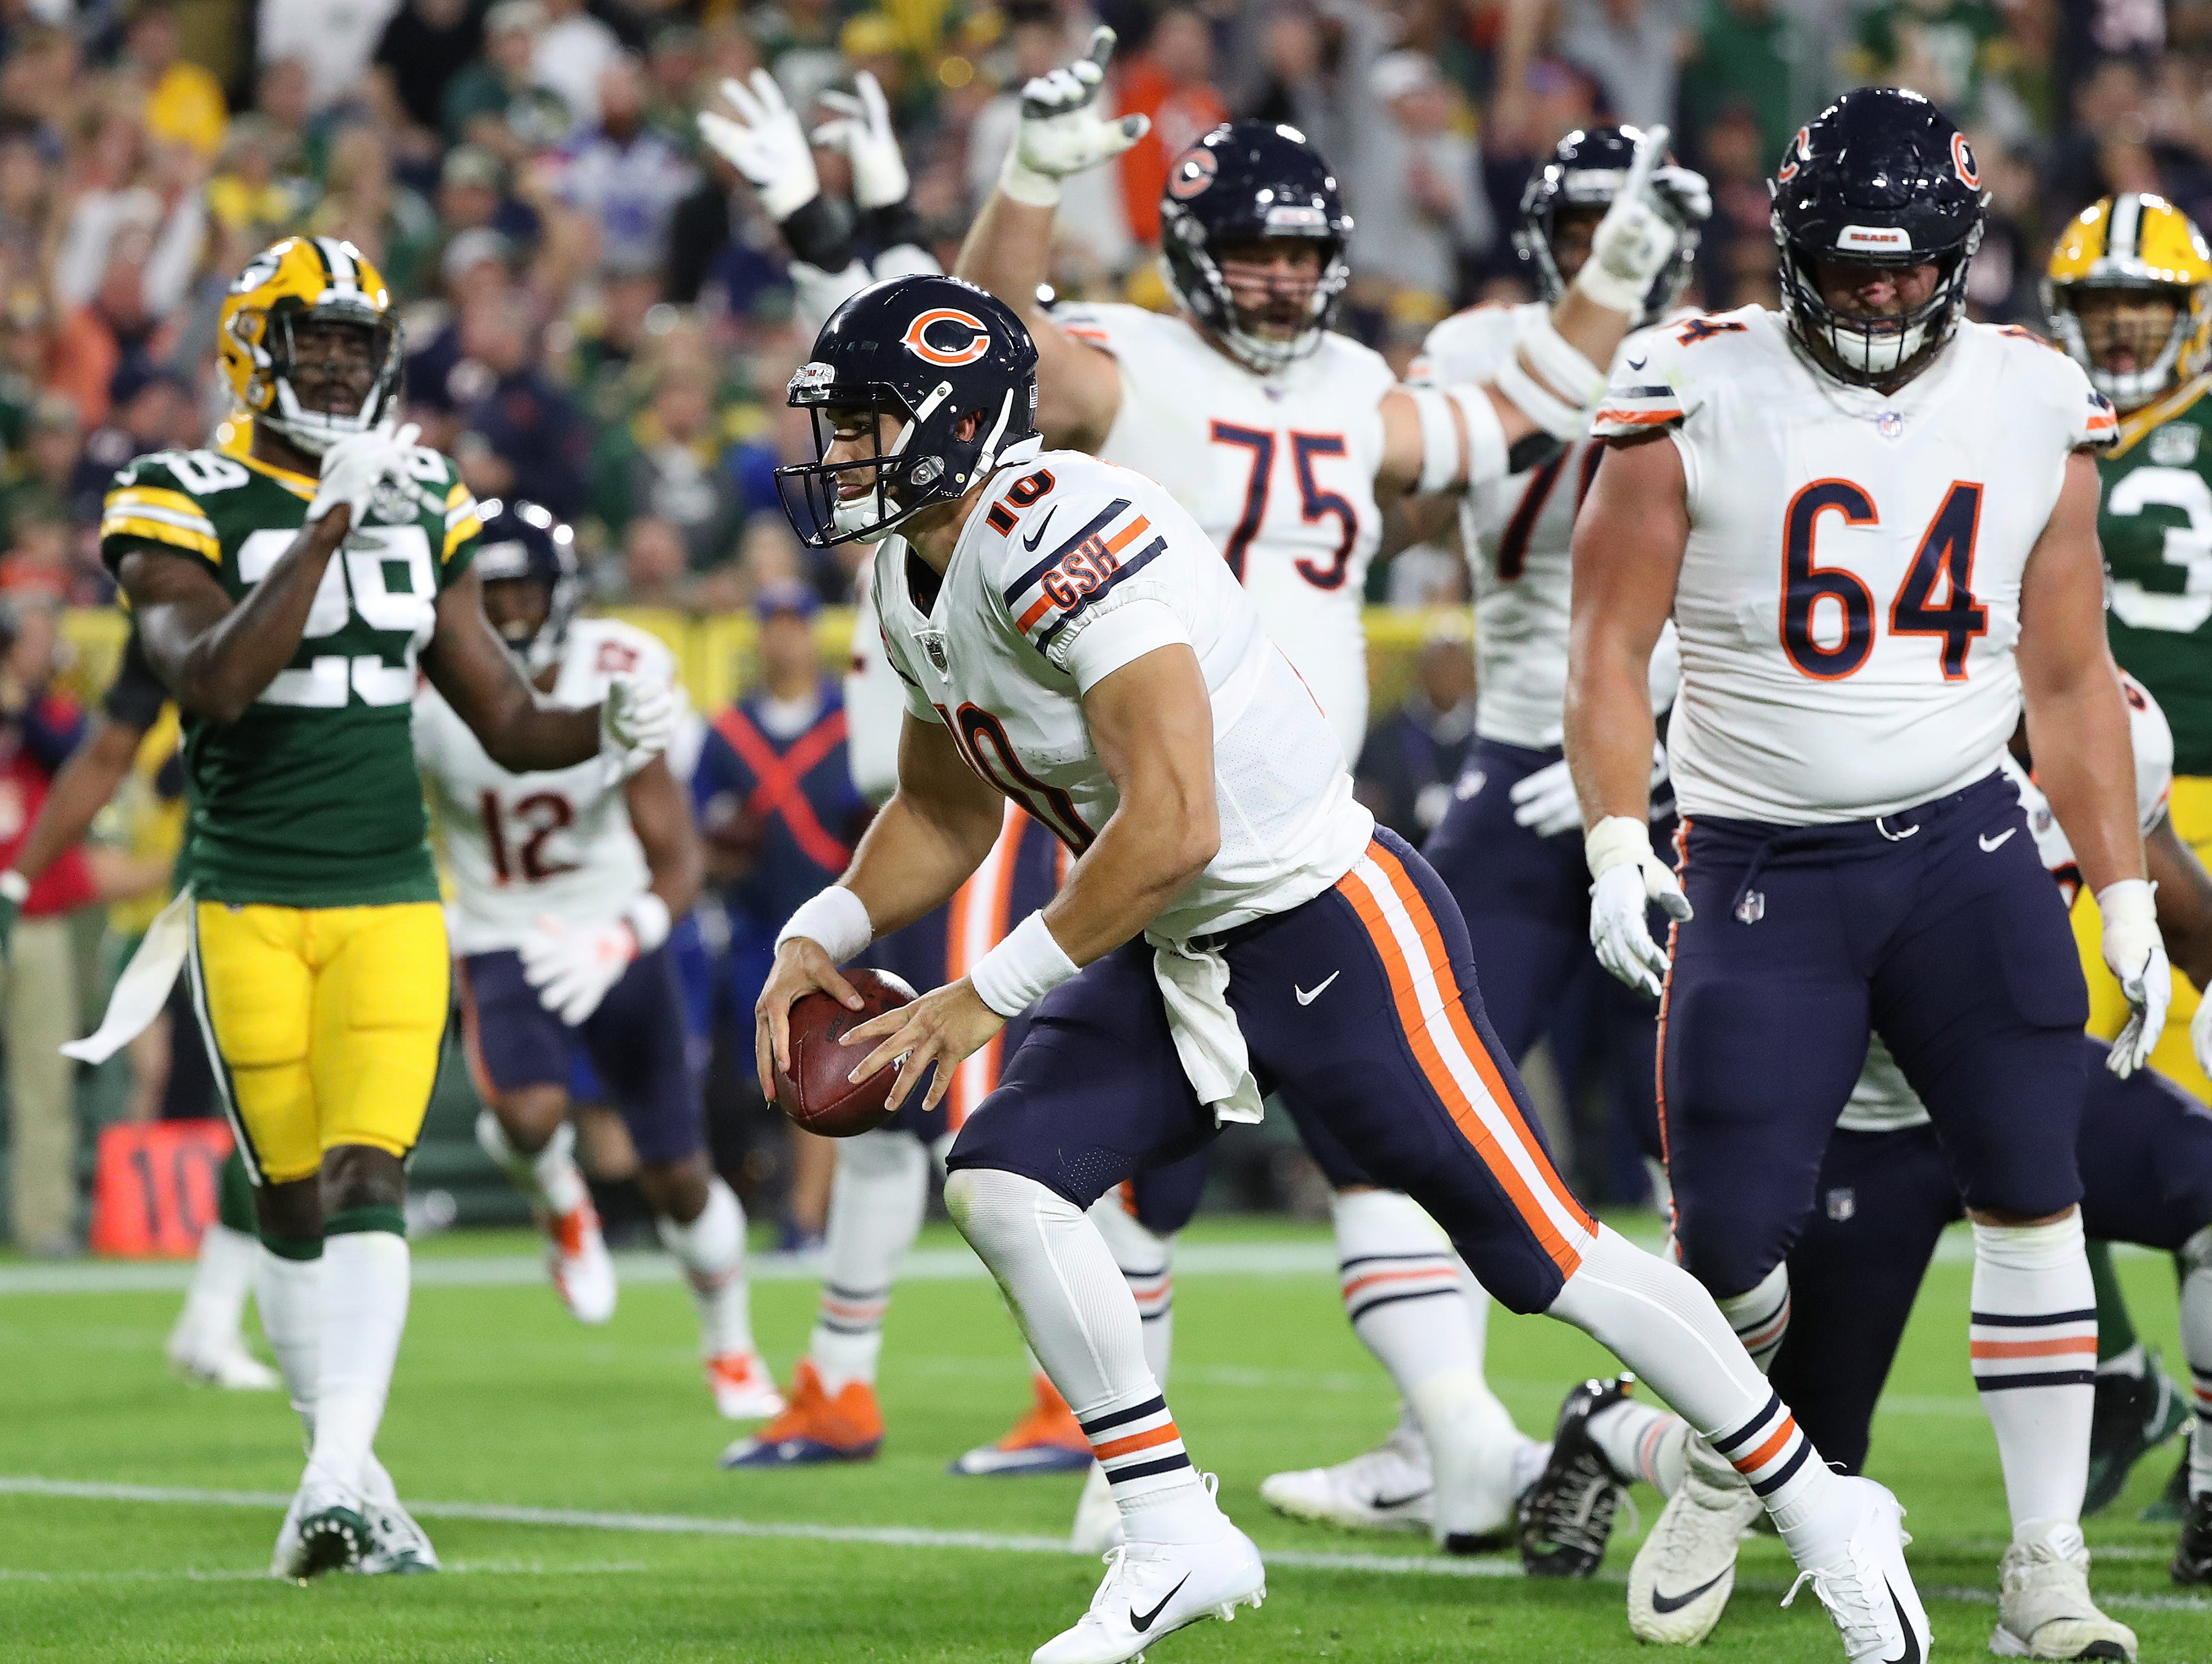 Chicago Bears quarterback Mitchell Trubisky (10) celebrates his touchdown against the Green Bay Packers in the first quarter Sunday, September 9, 2018 at Lambeau Field in Green Bay, Wis.